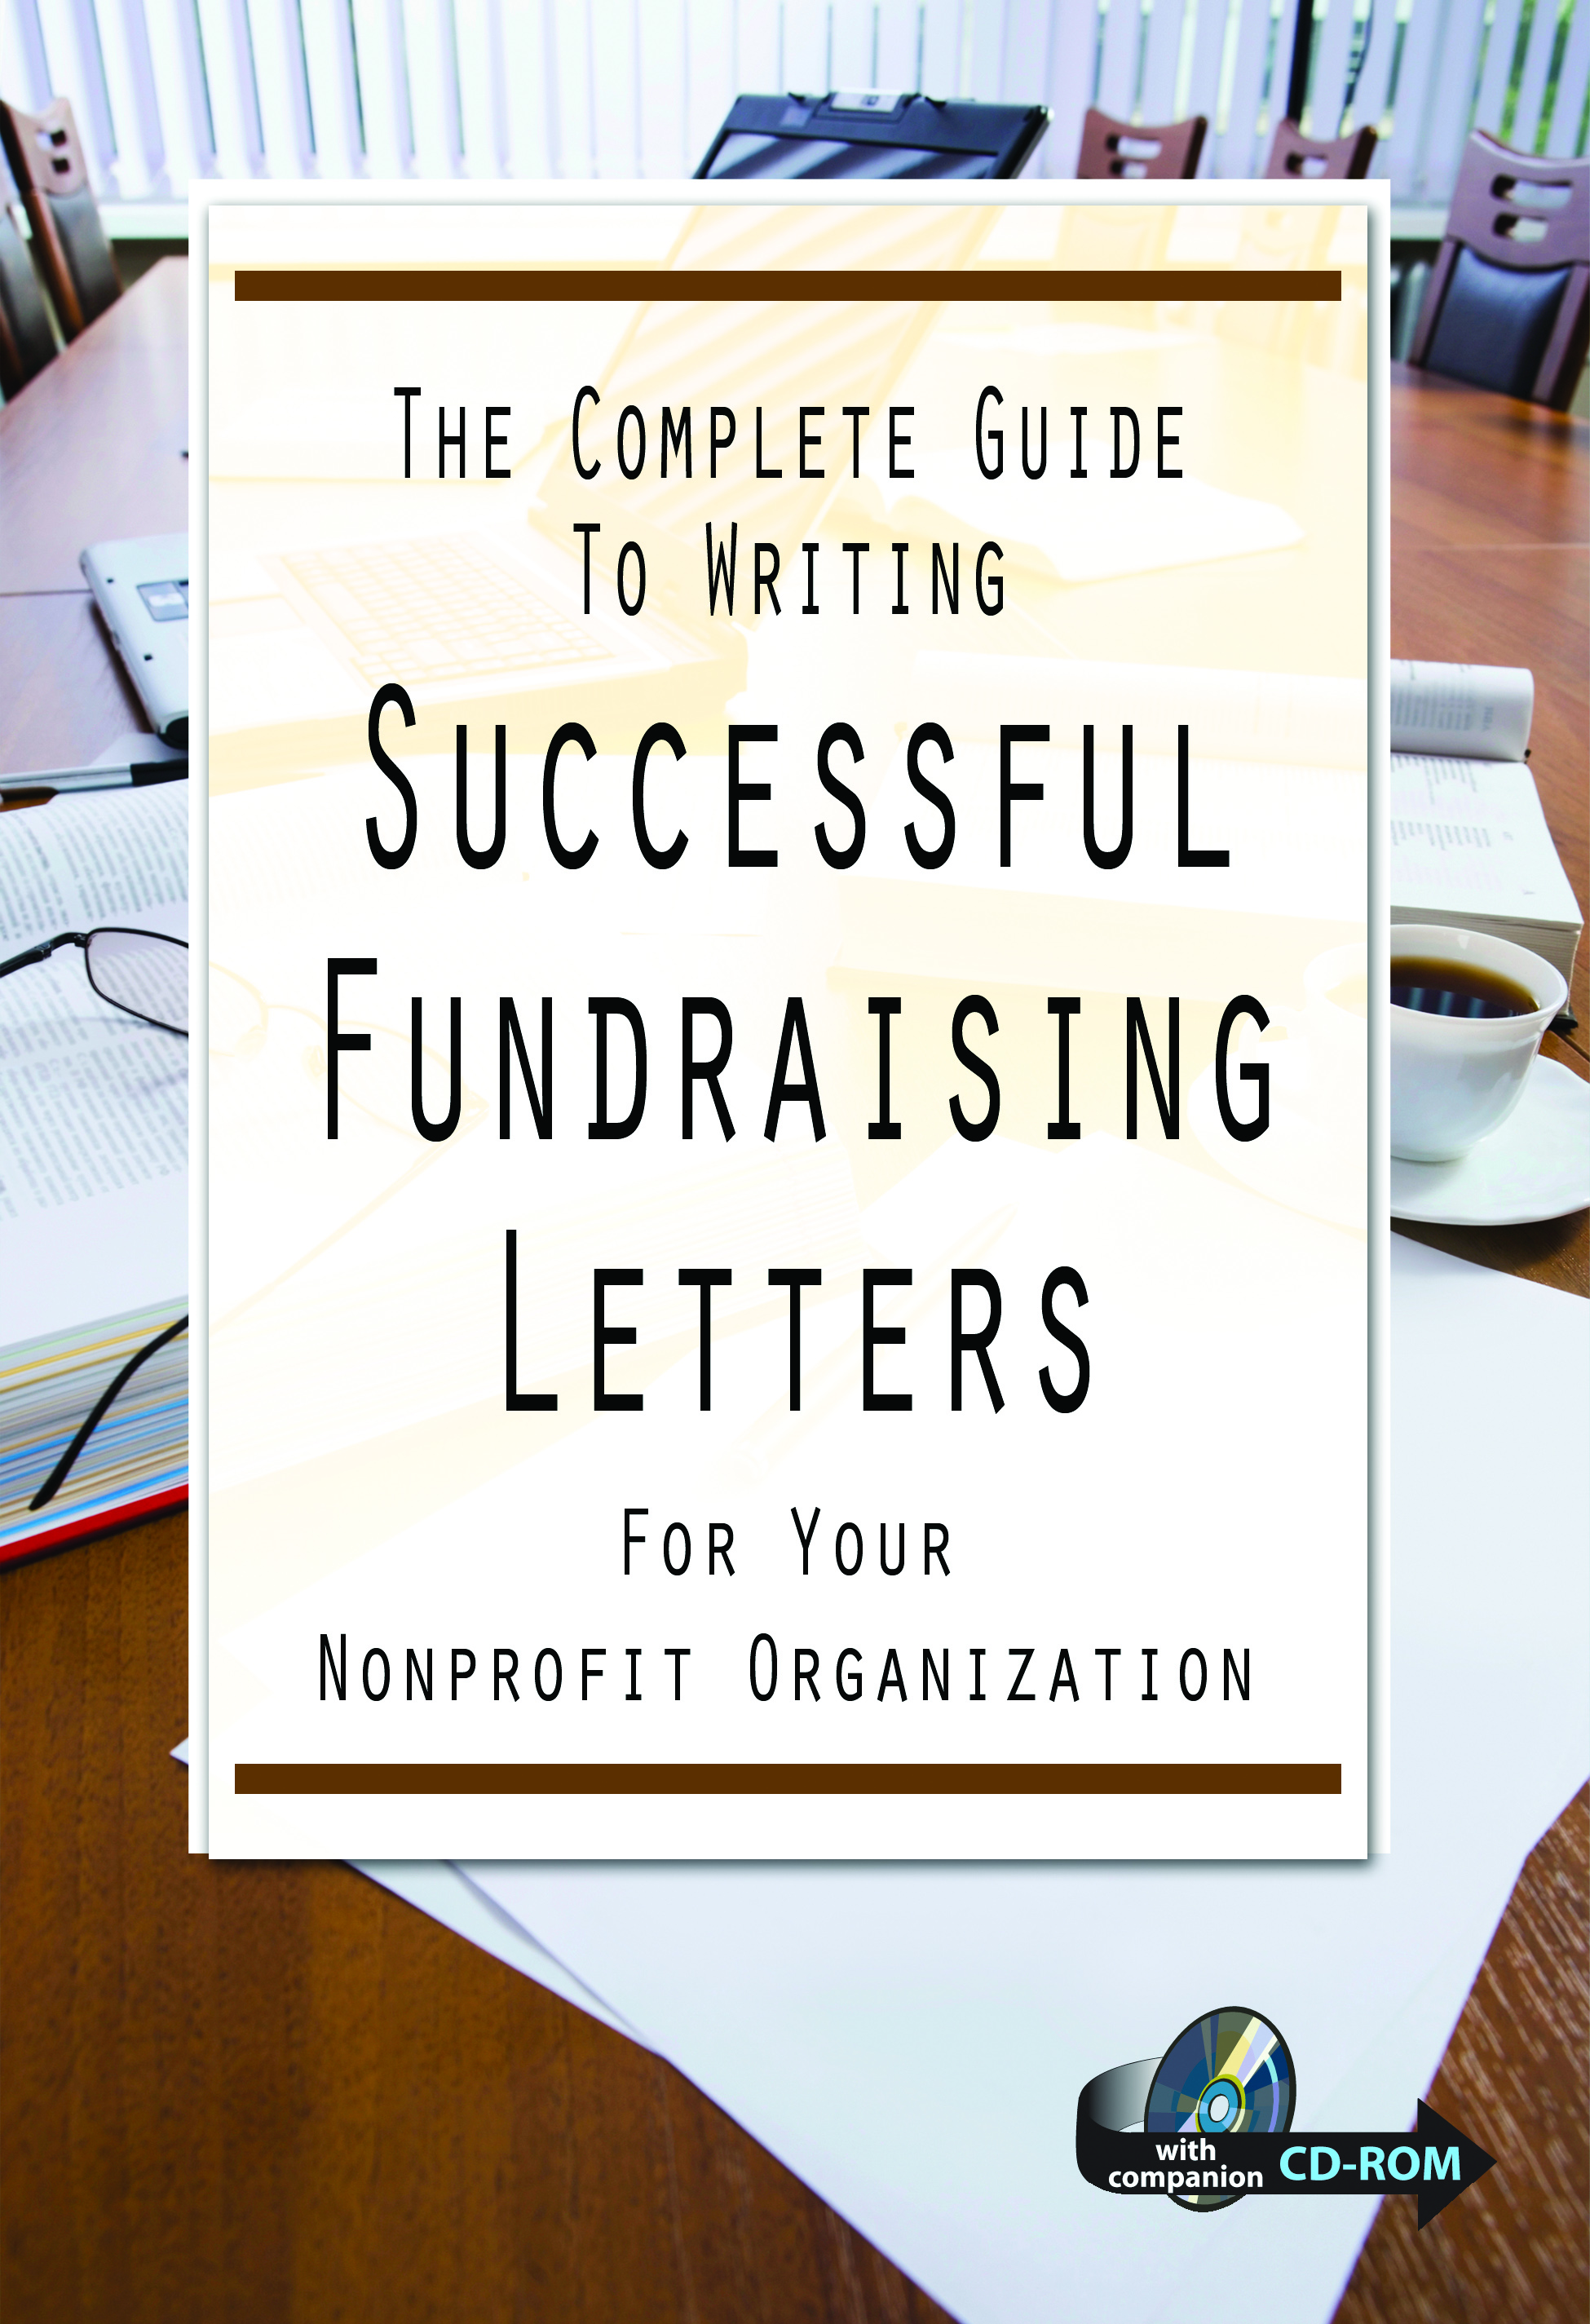 The Complete Guide to Writing Successful Fundraising Letters for Your Nonprofit Organization  With Companion CD-ROM